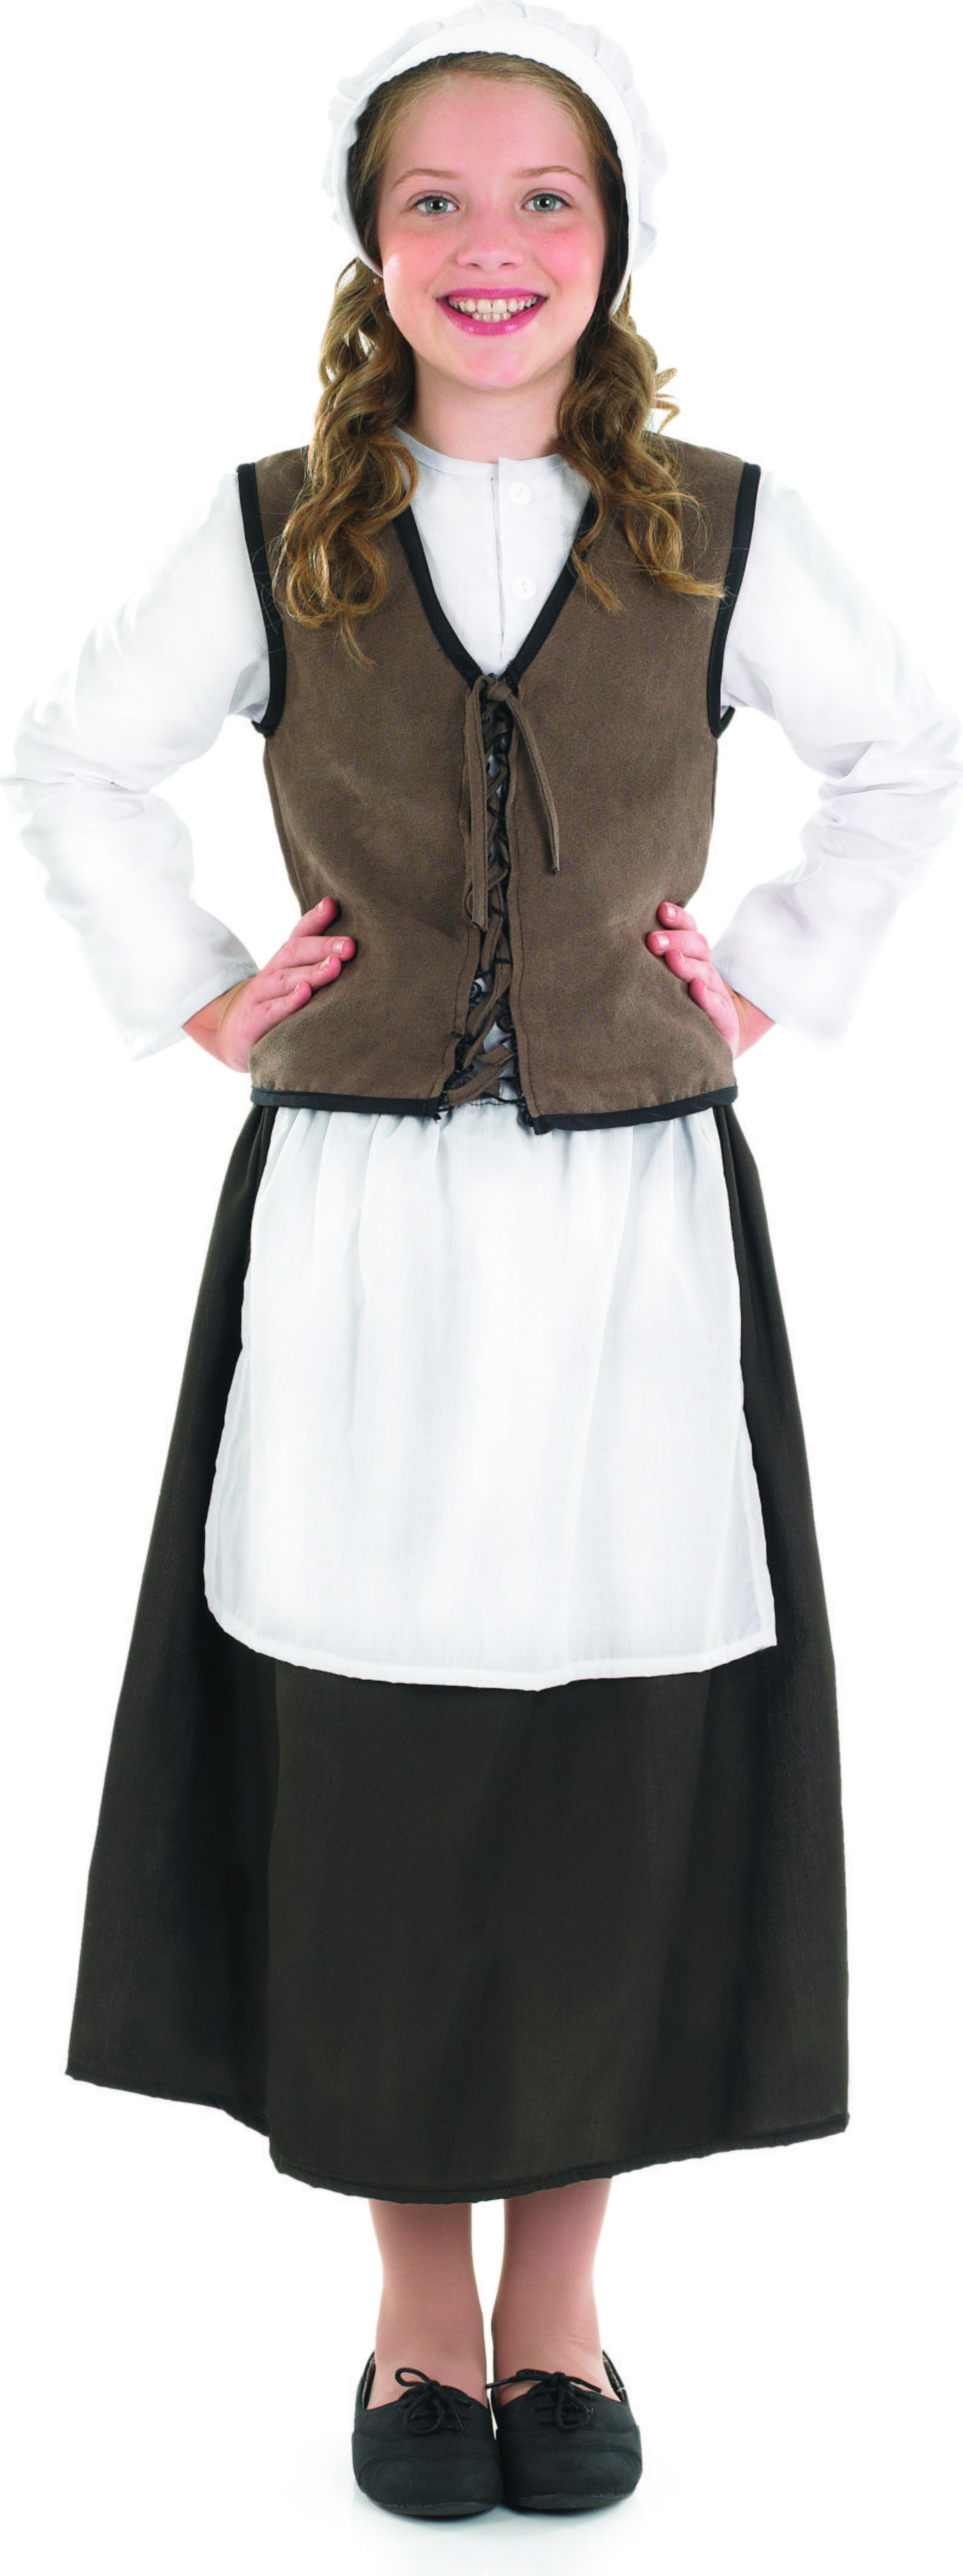 Girls Tudor Kitchen Girl Tudor Outfit - (White, Brown)